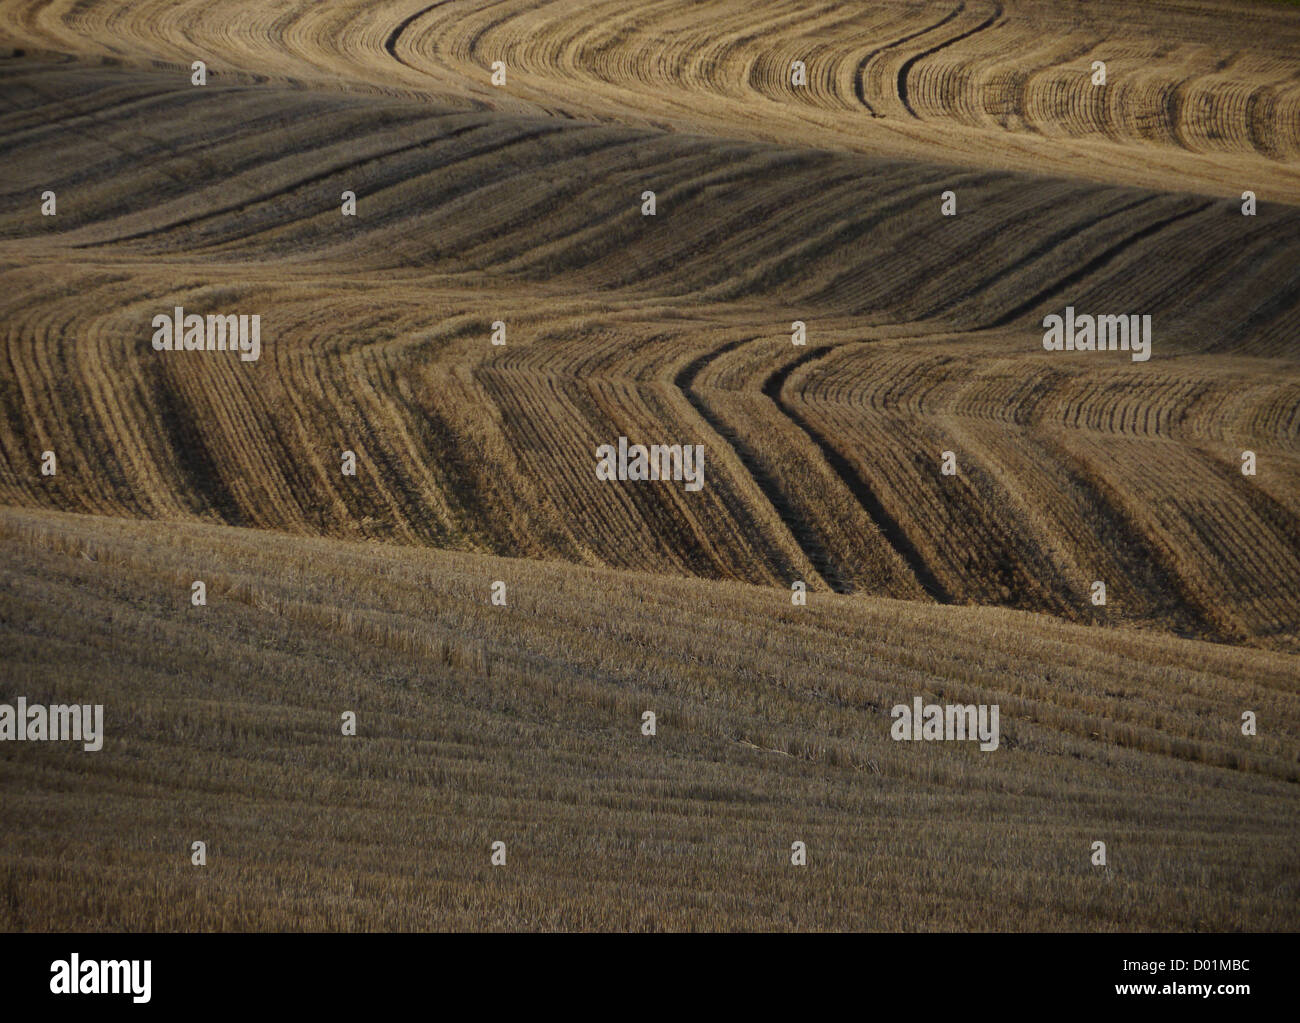 Fields in a rural Nottinghamshire English landscape in autumn (the fall) - Stock Image